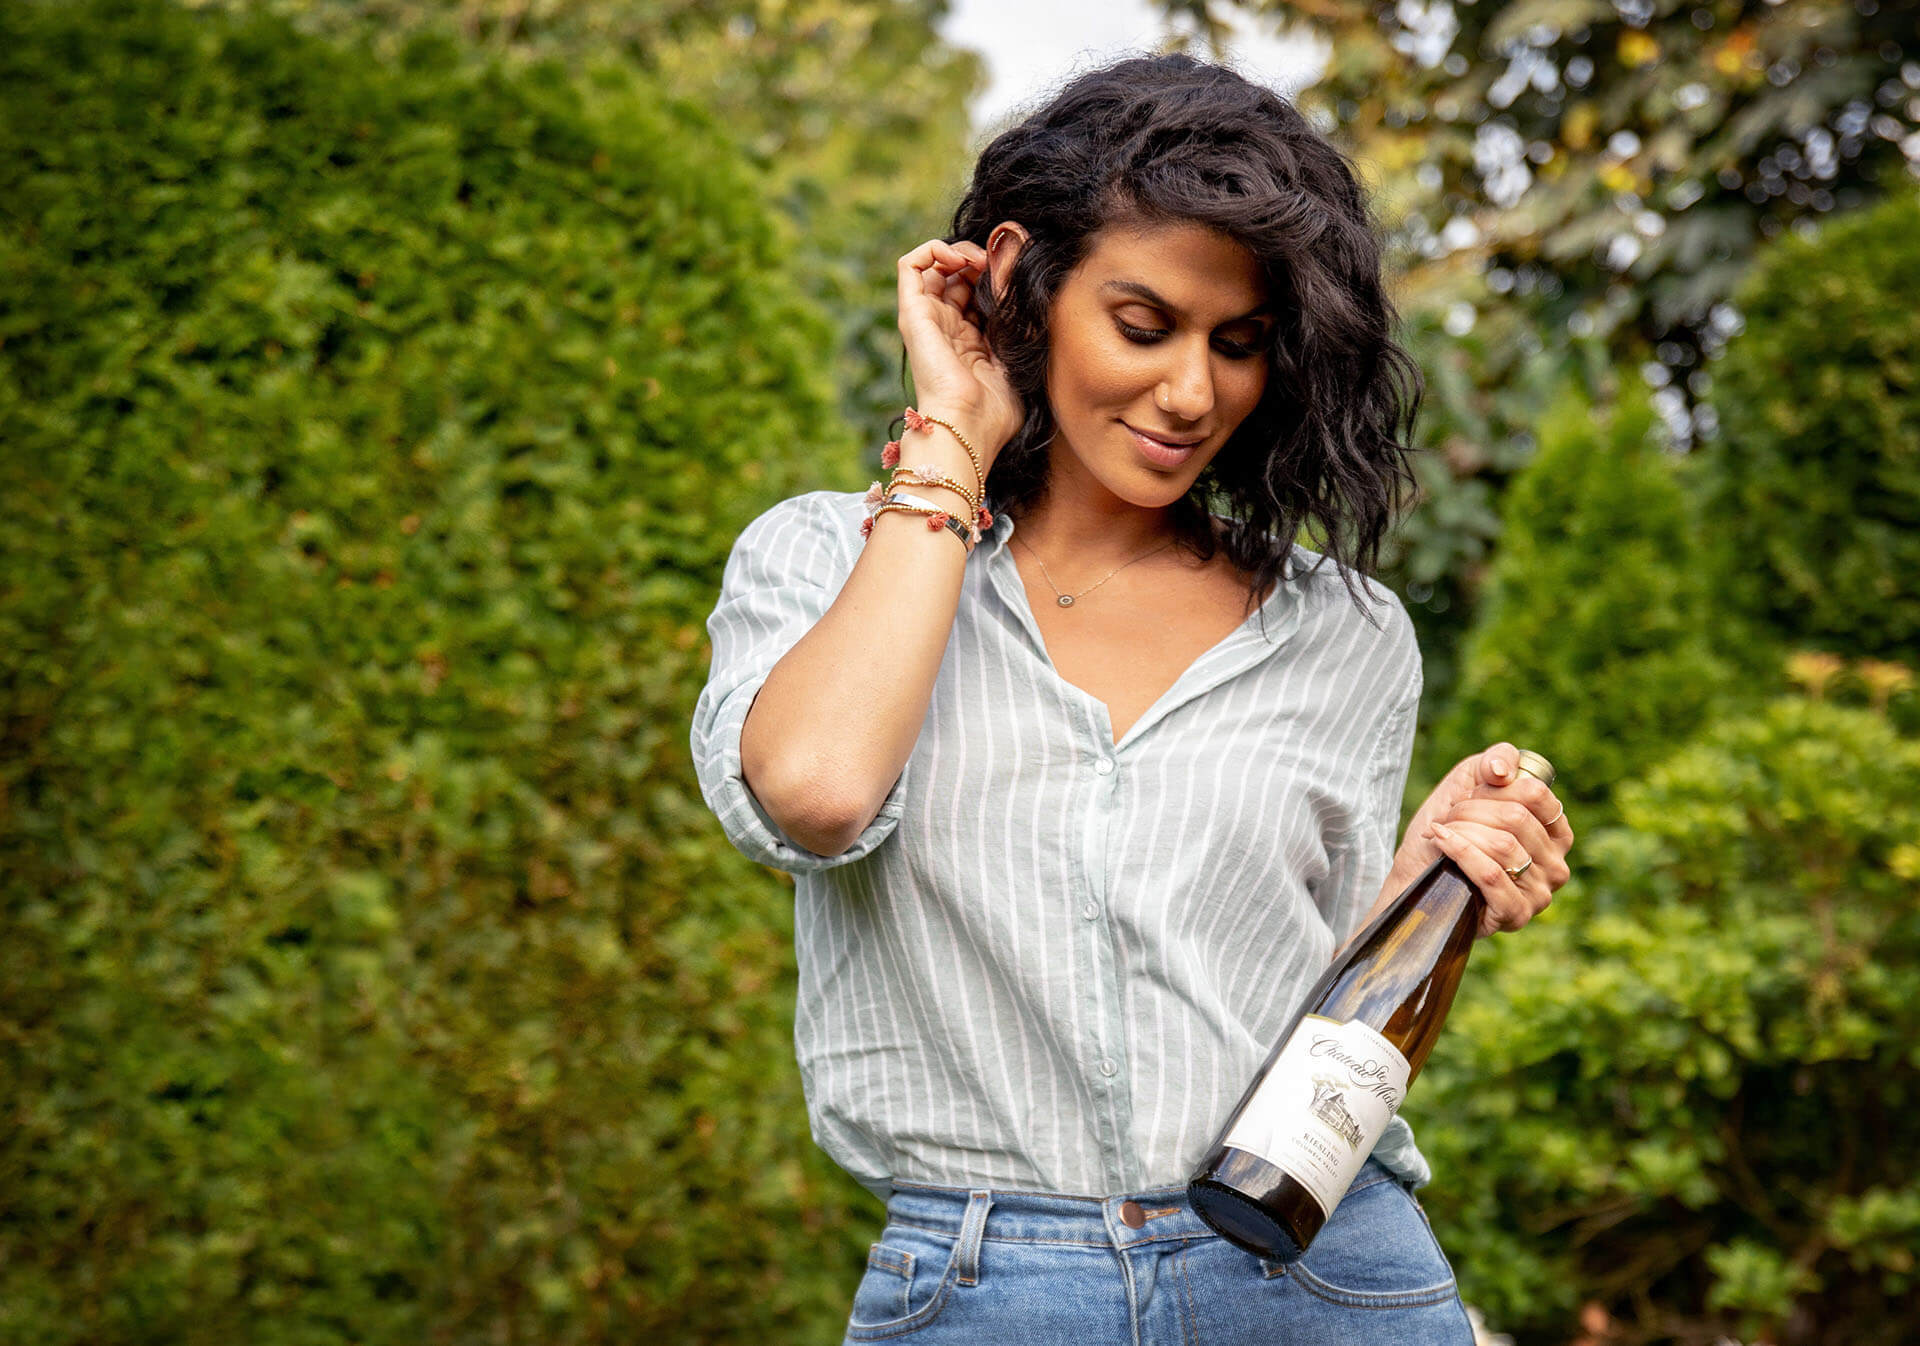 Photo of a woman arriving at a party with a bottle of wine